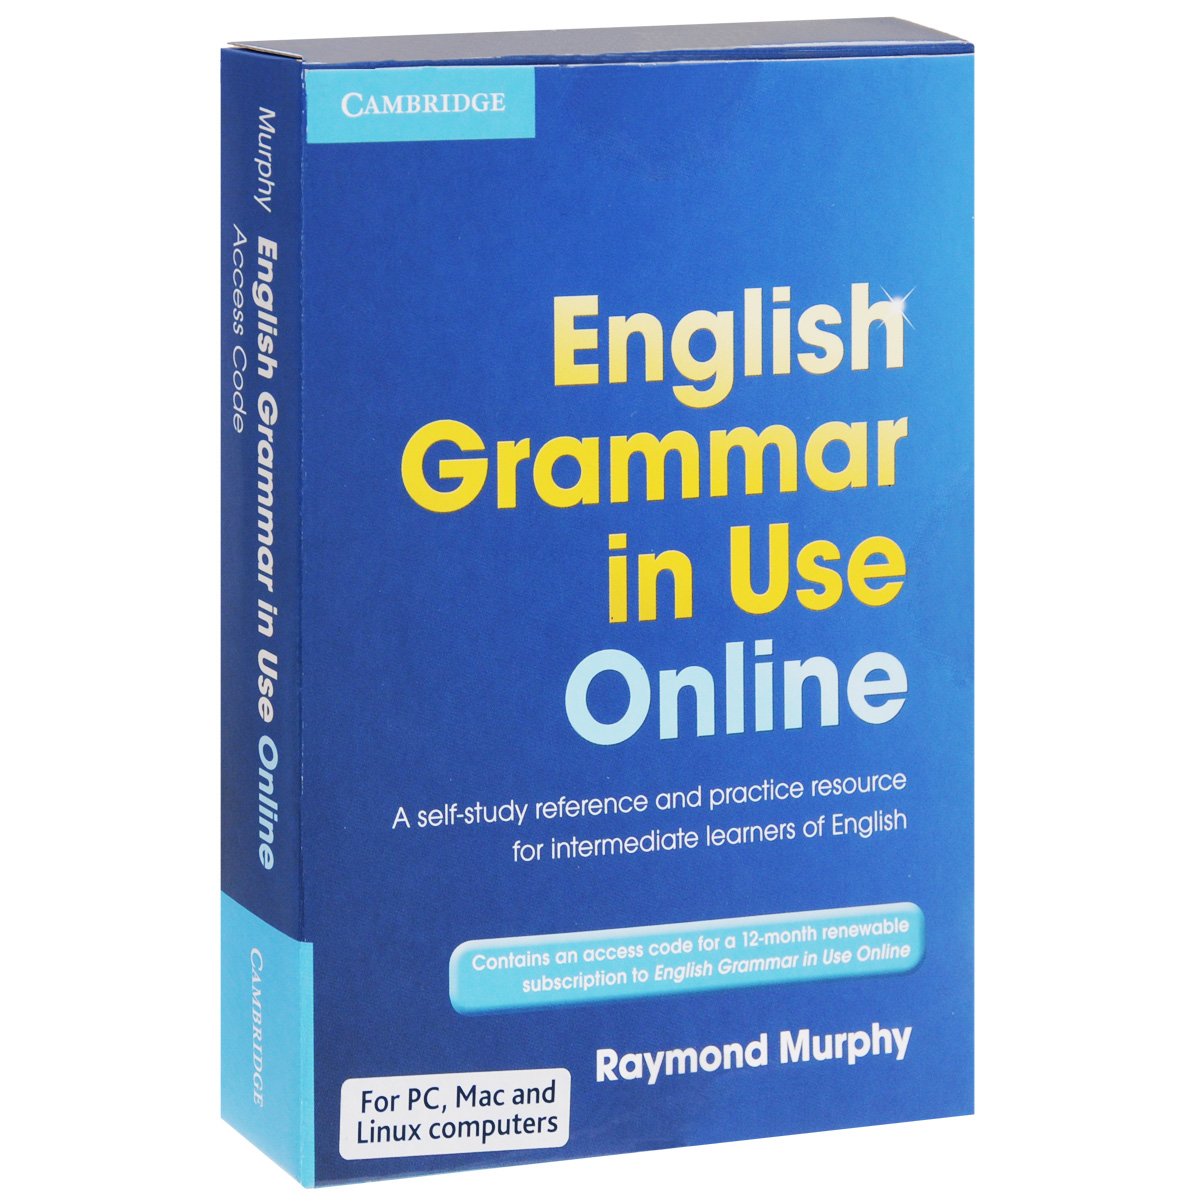 Access Code Card: English Grammar in Use Online: Access Code: A Self-Study Reference And Practice Resource for Intermediate Learners of English straight to advanced digital student s book premium pack internet access code card